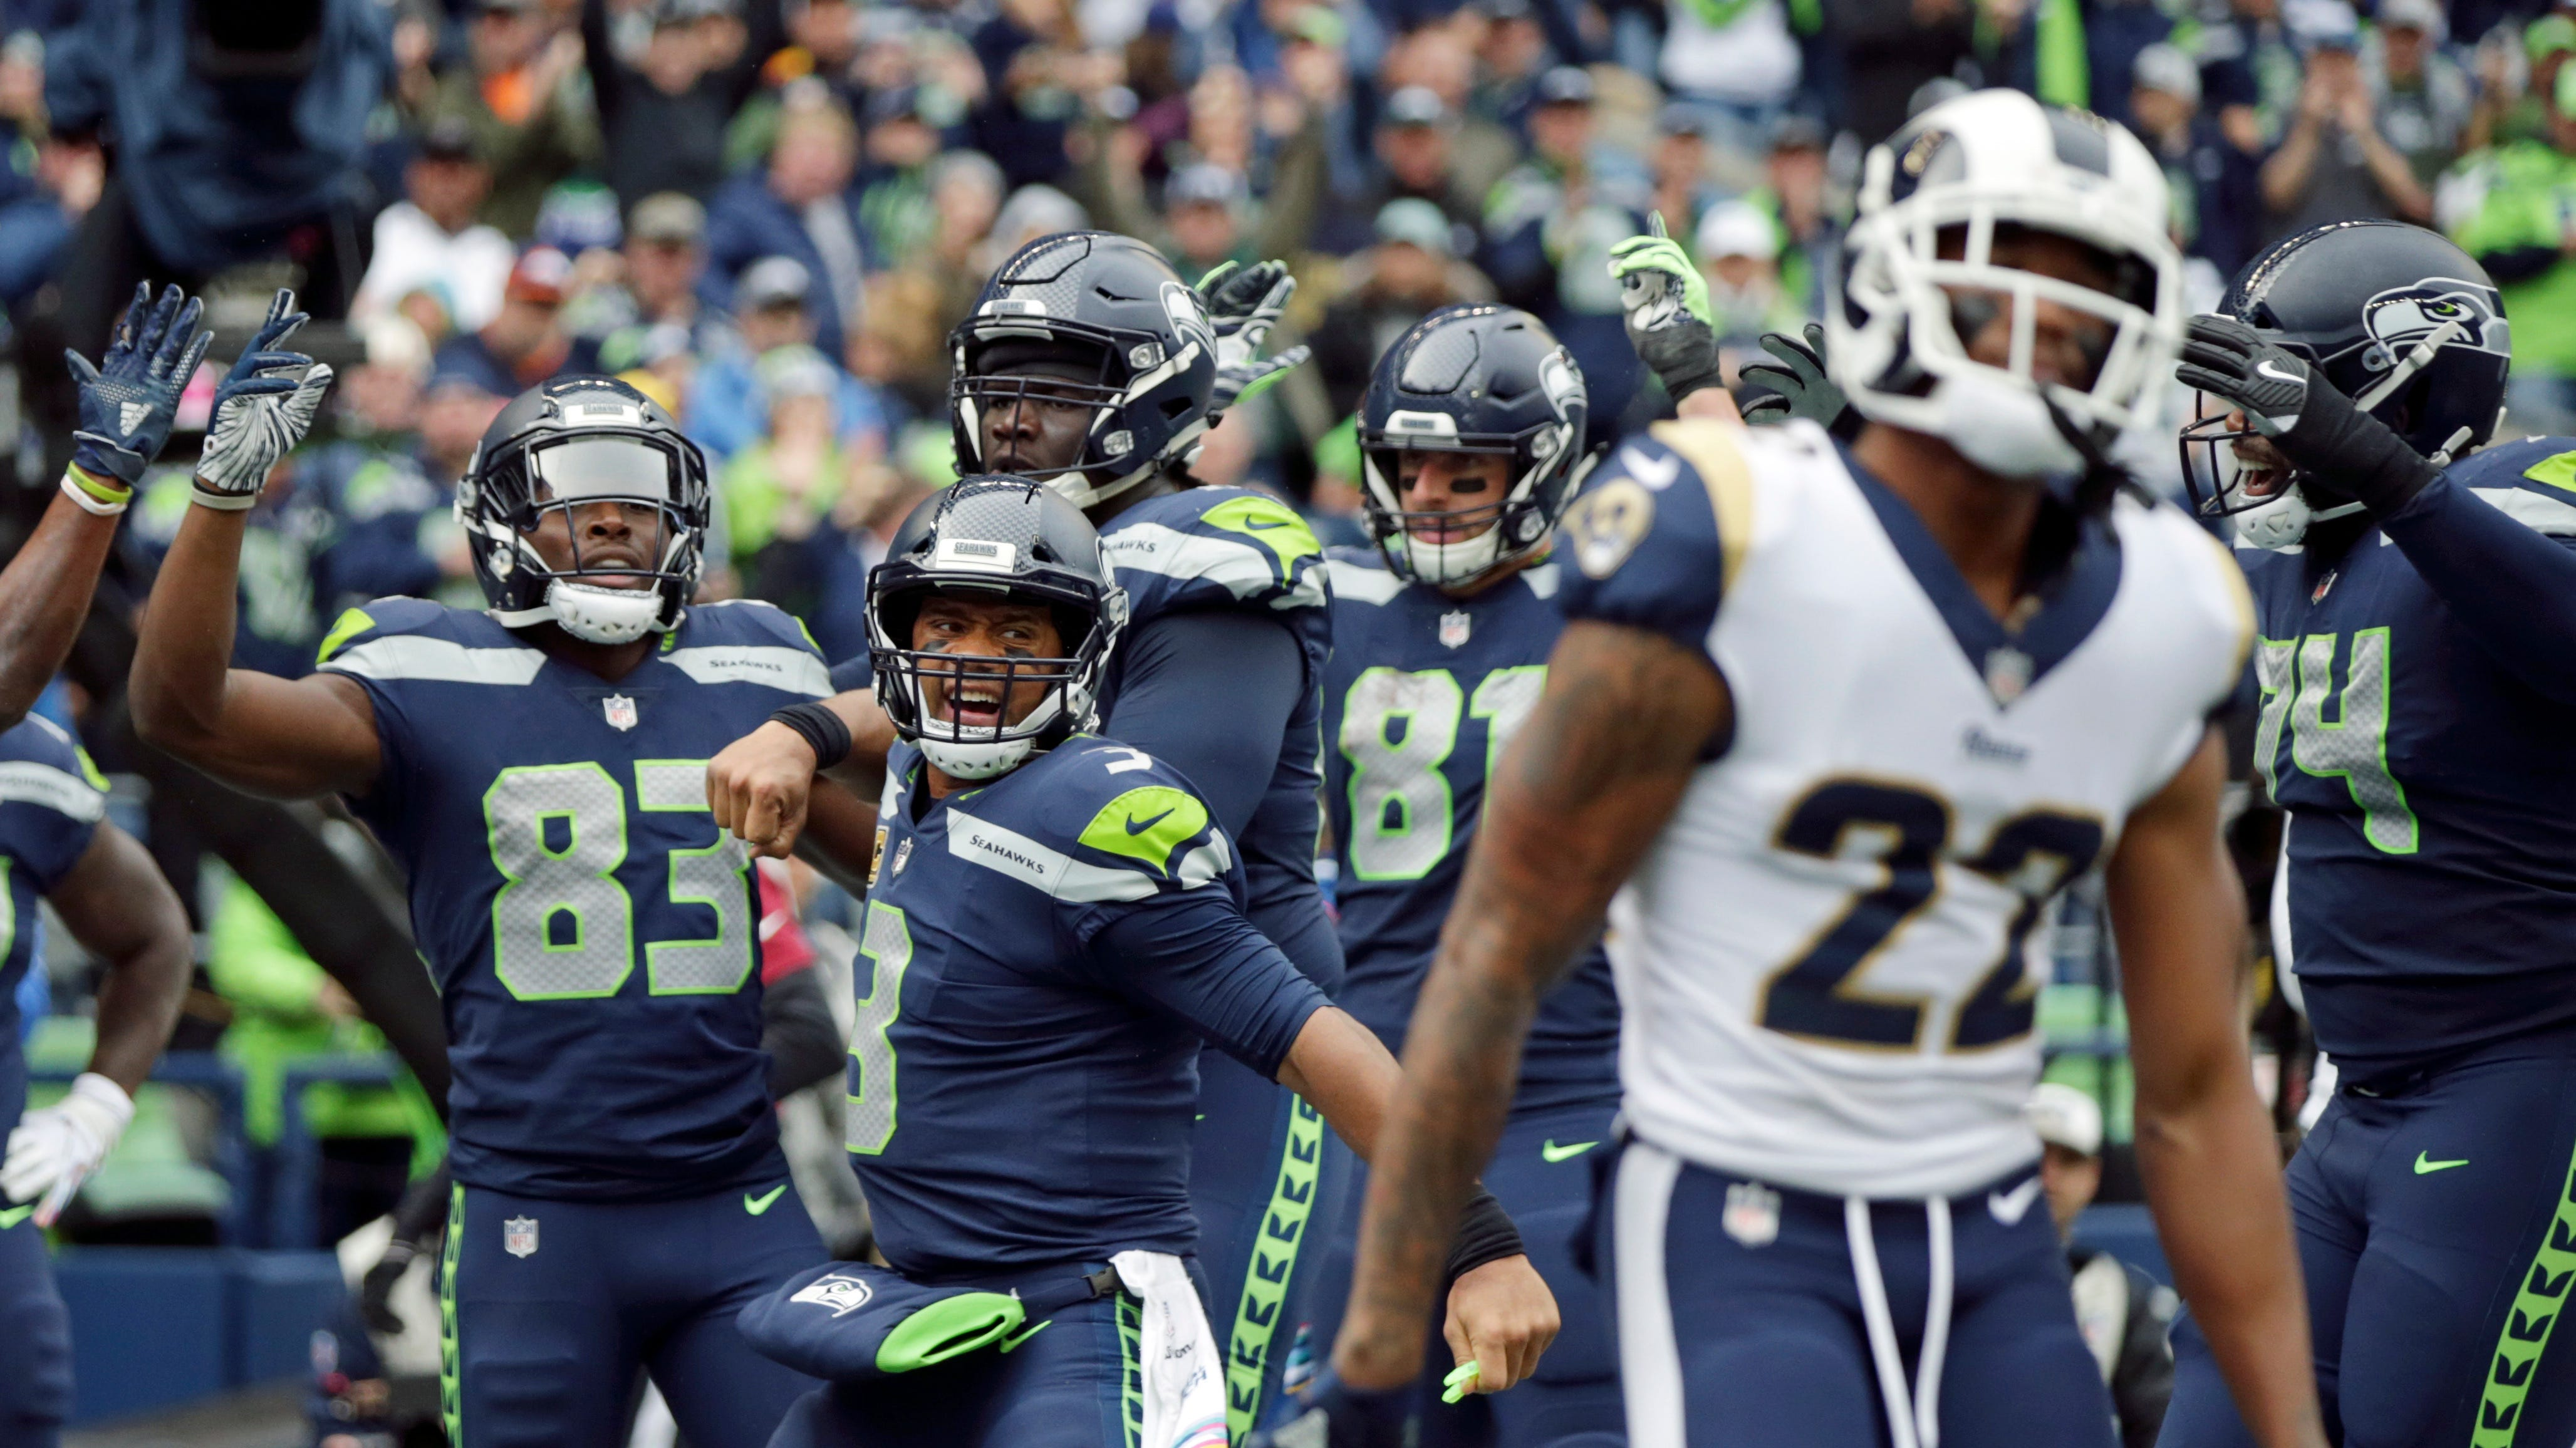 Seahawks quarterback Russell Wilson threw three touchdown passes in Sunday's loss to the Los Angeles Rams.